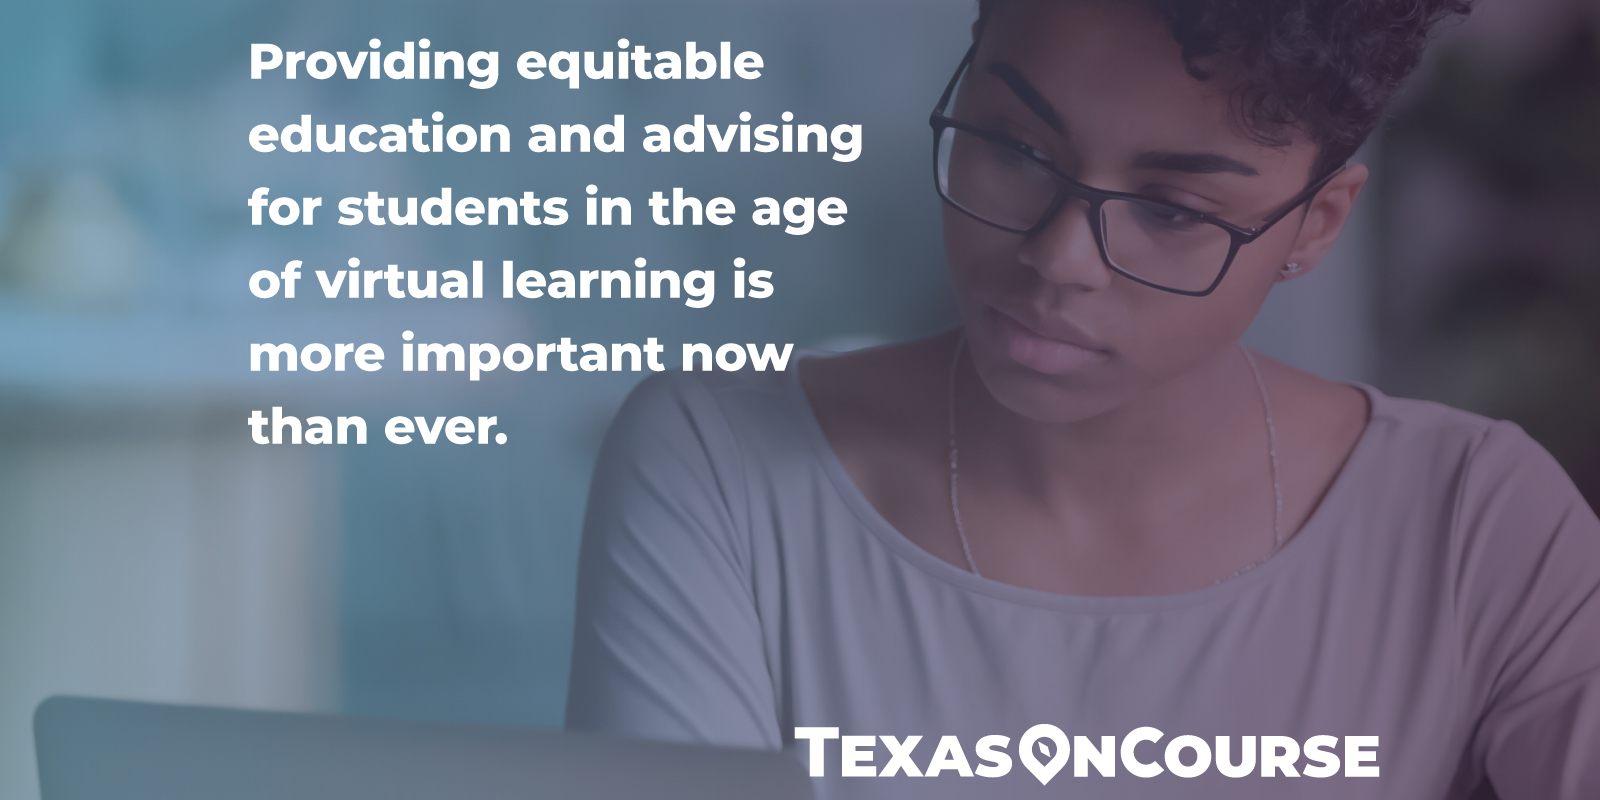 Providing equitable education and advising for students is more important now, in the age of virtual learning, than ever.